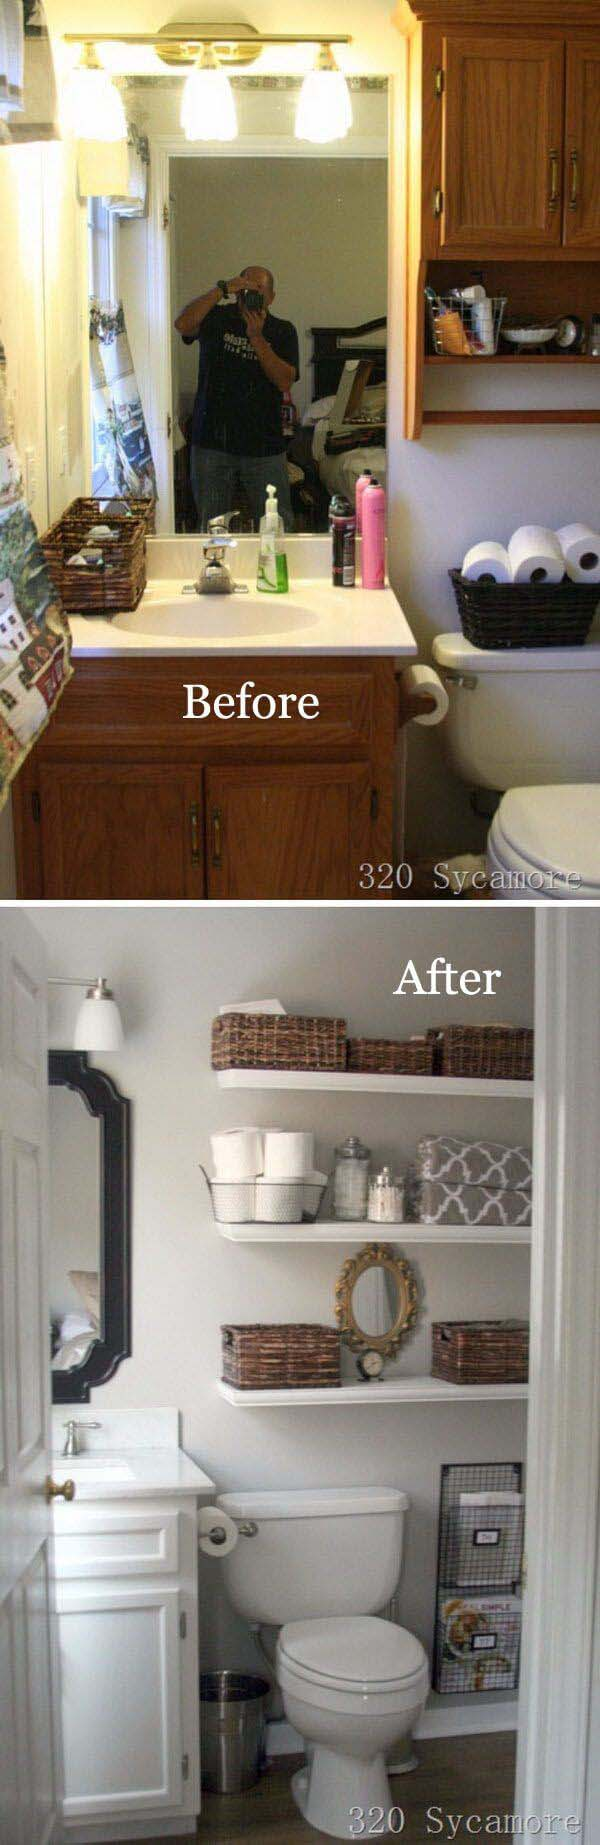 Light Paint Does Wonders in Small Bathrooms #bathroom #makeover #decorhomeideas